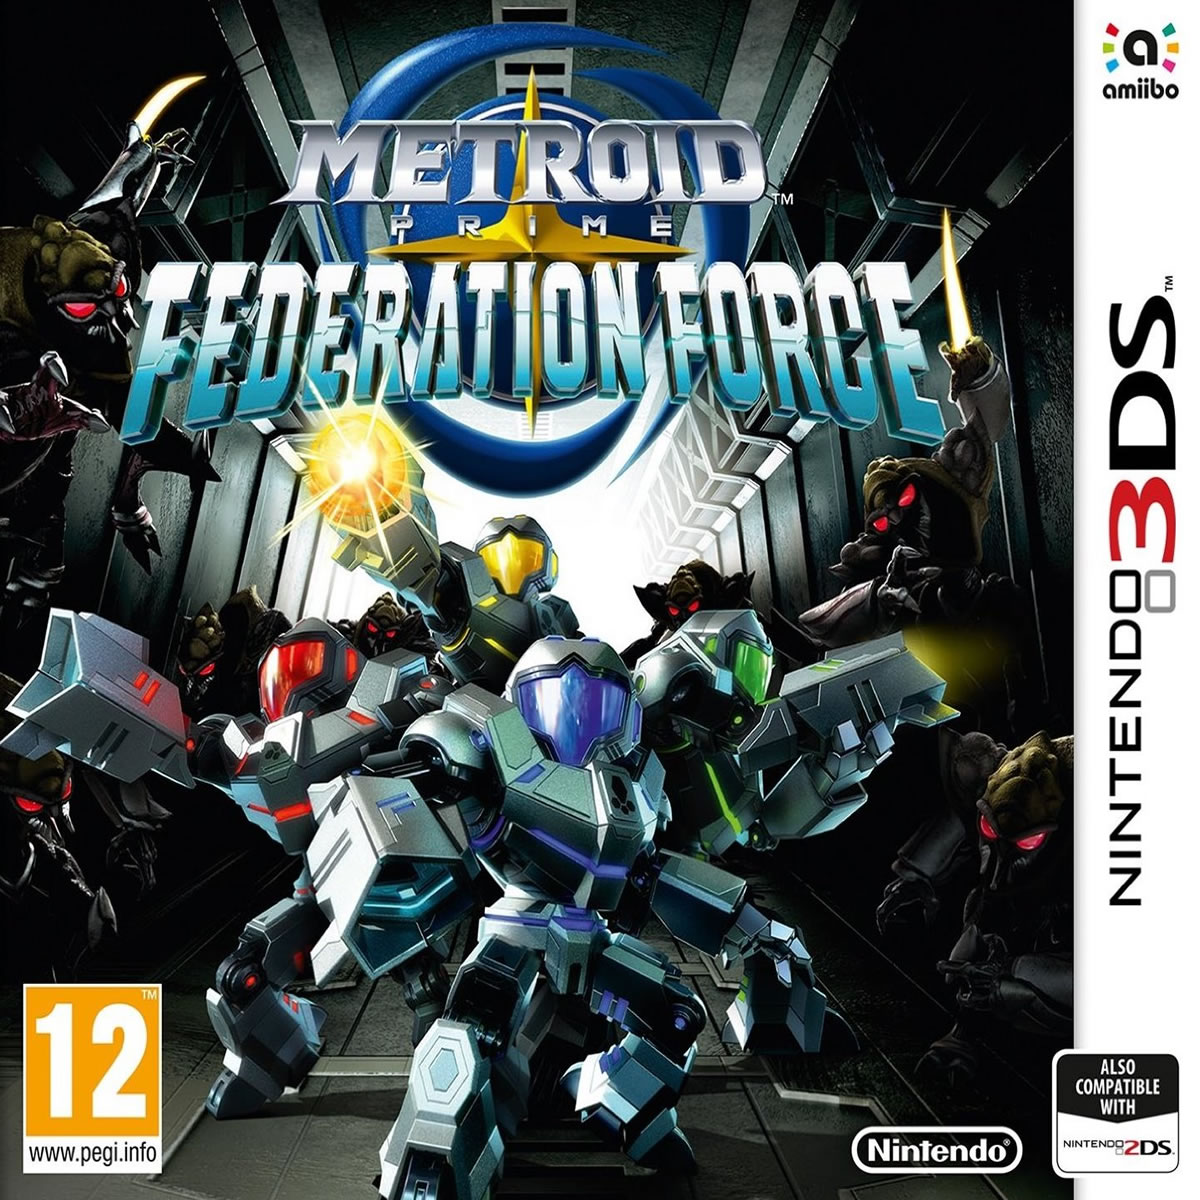 METROID PRIME: FEDERATION FORCE (3DS, 2DS)